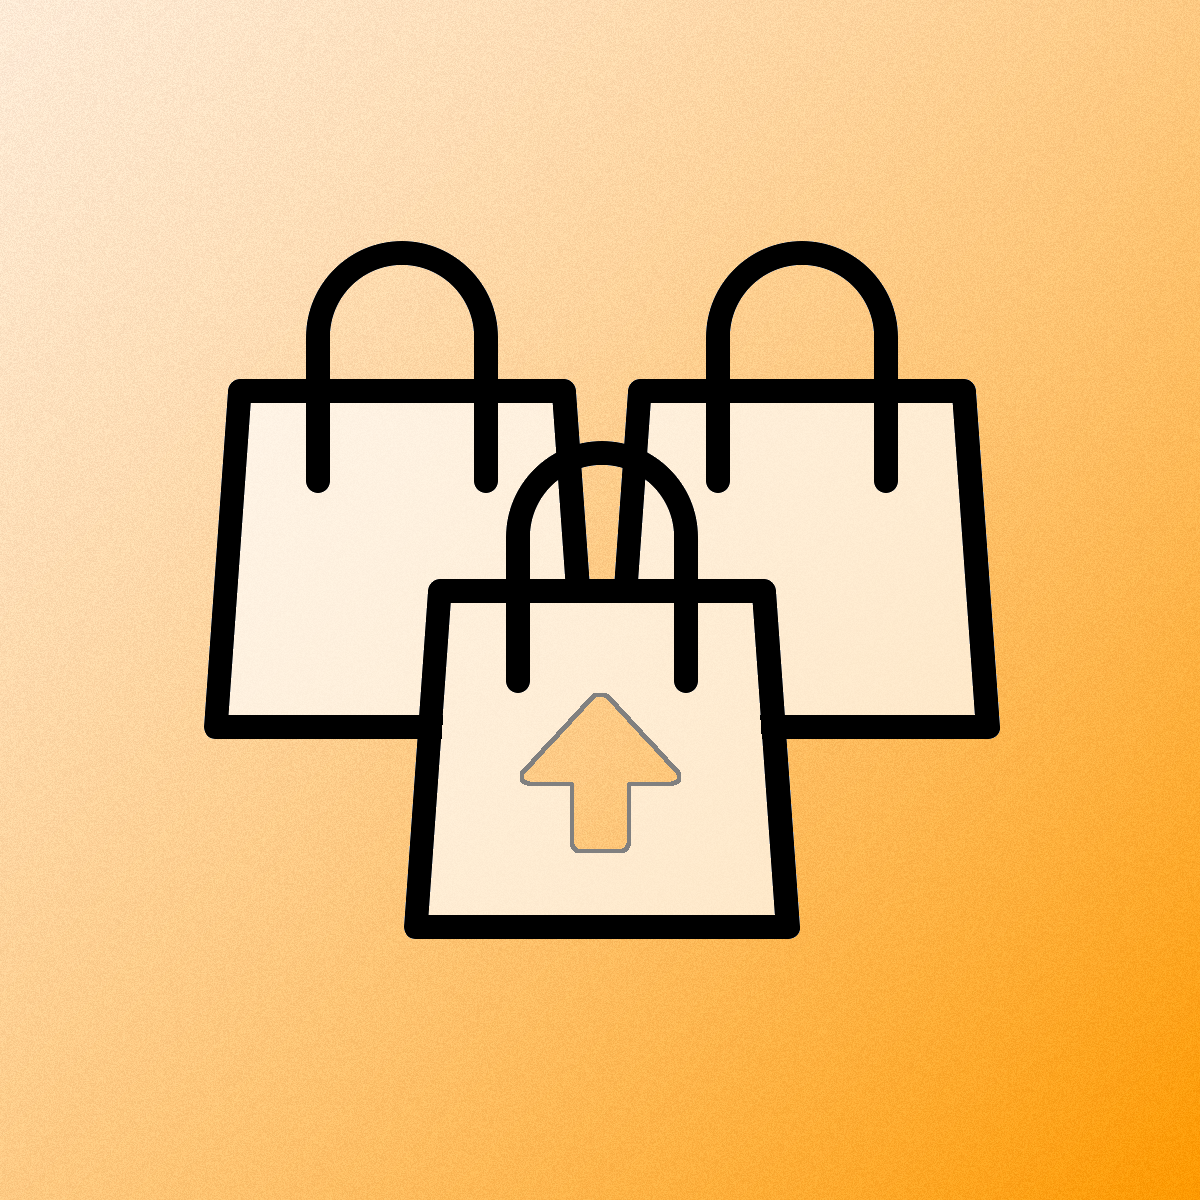 Hire Shopify Experts to integrate ZeBundler app into a Shopify store